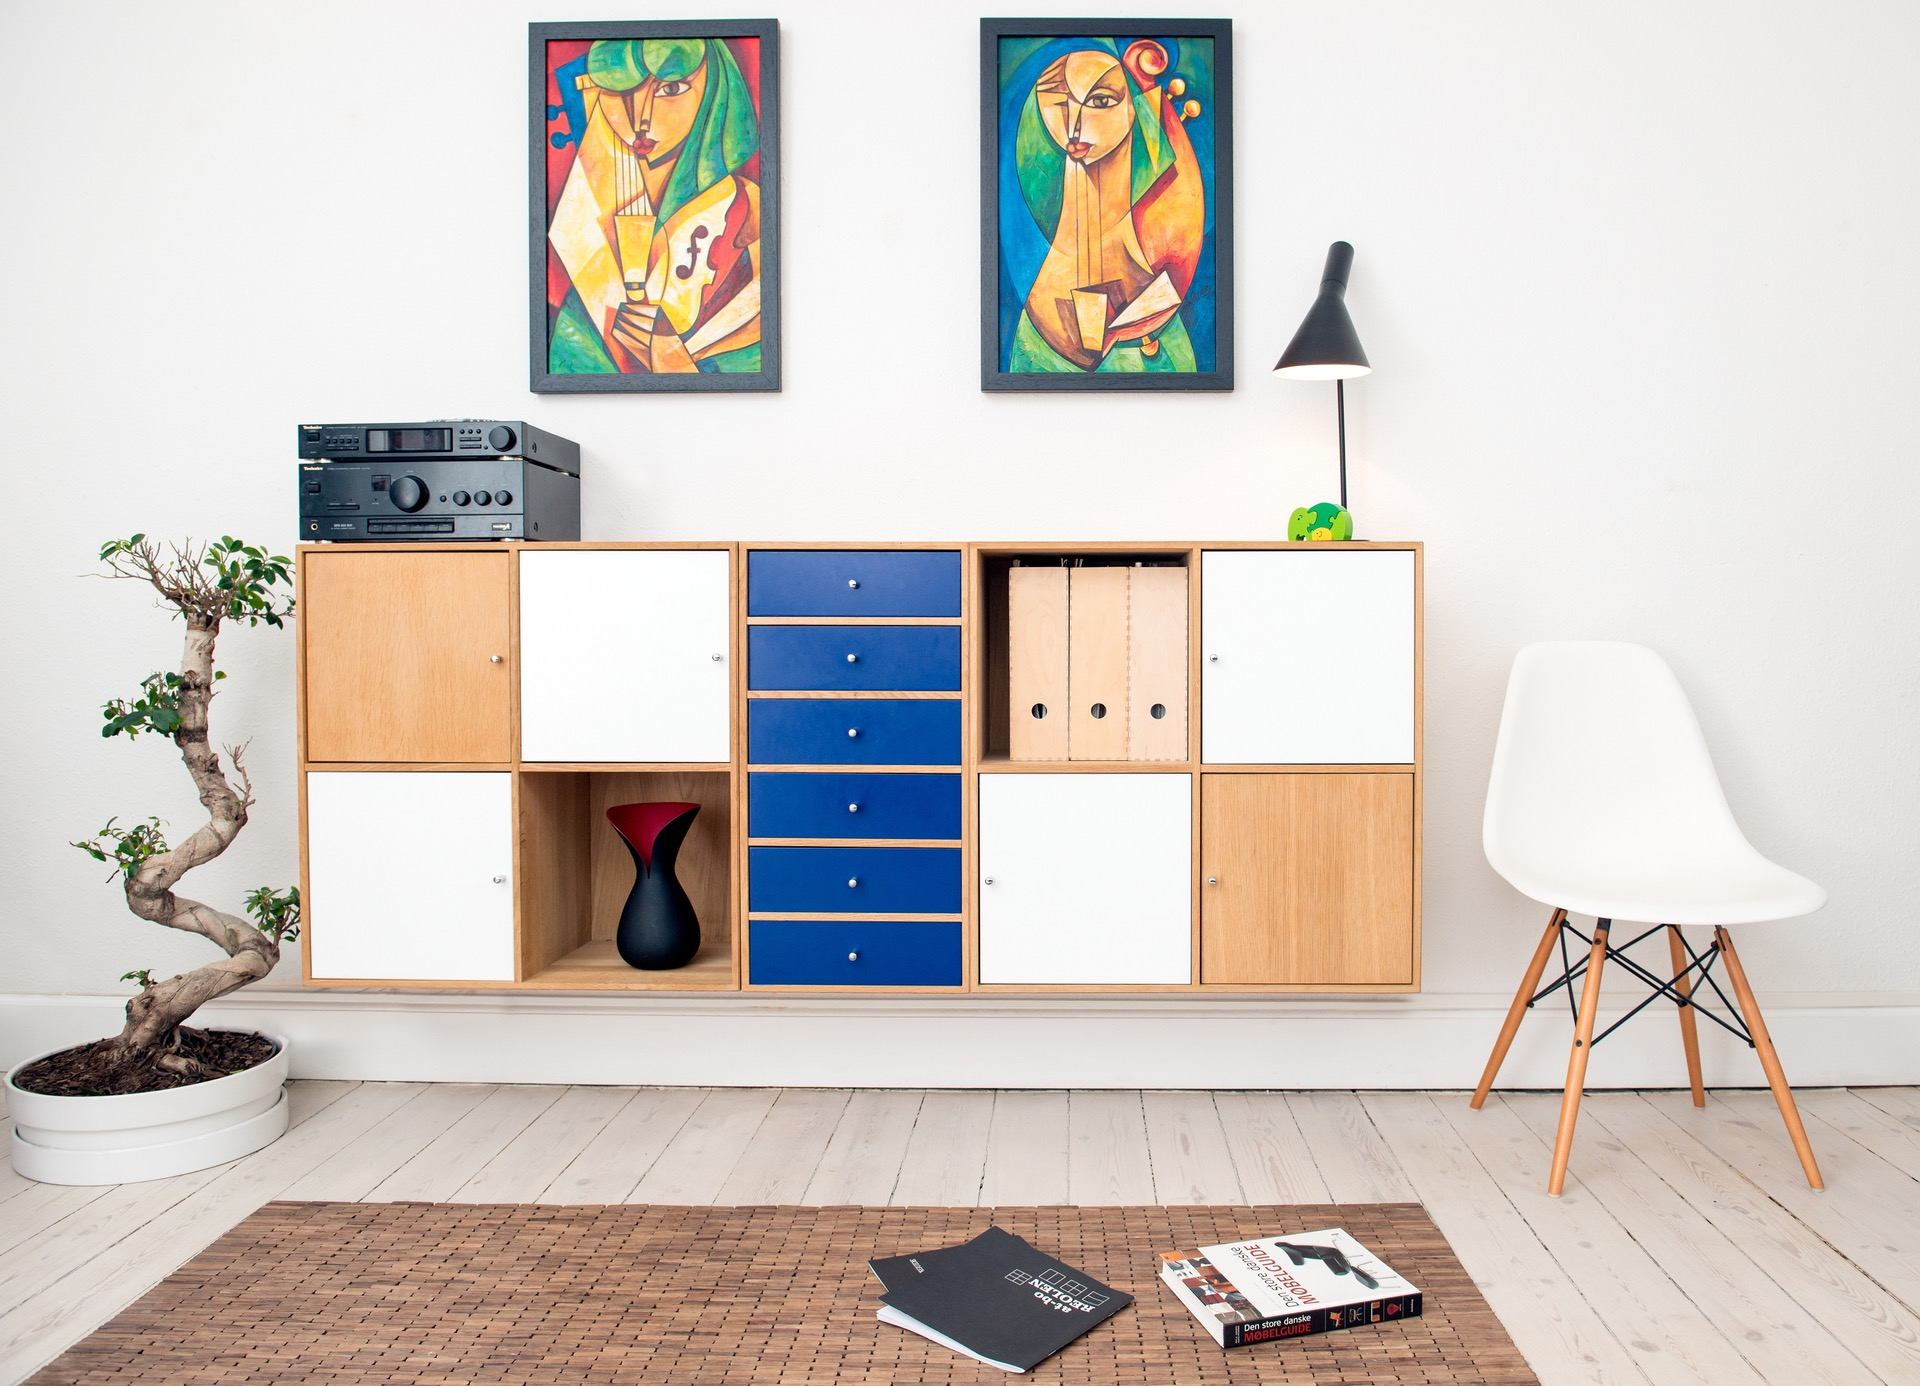 70s-inspired storage unit with wood panels and splashes of electric blue